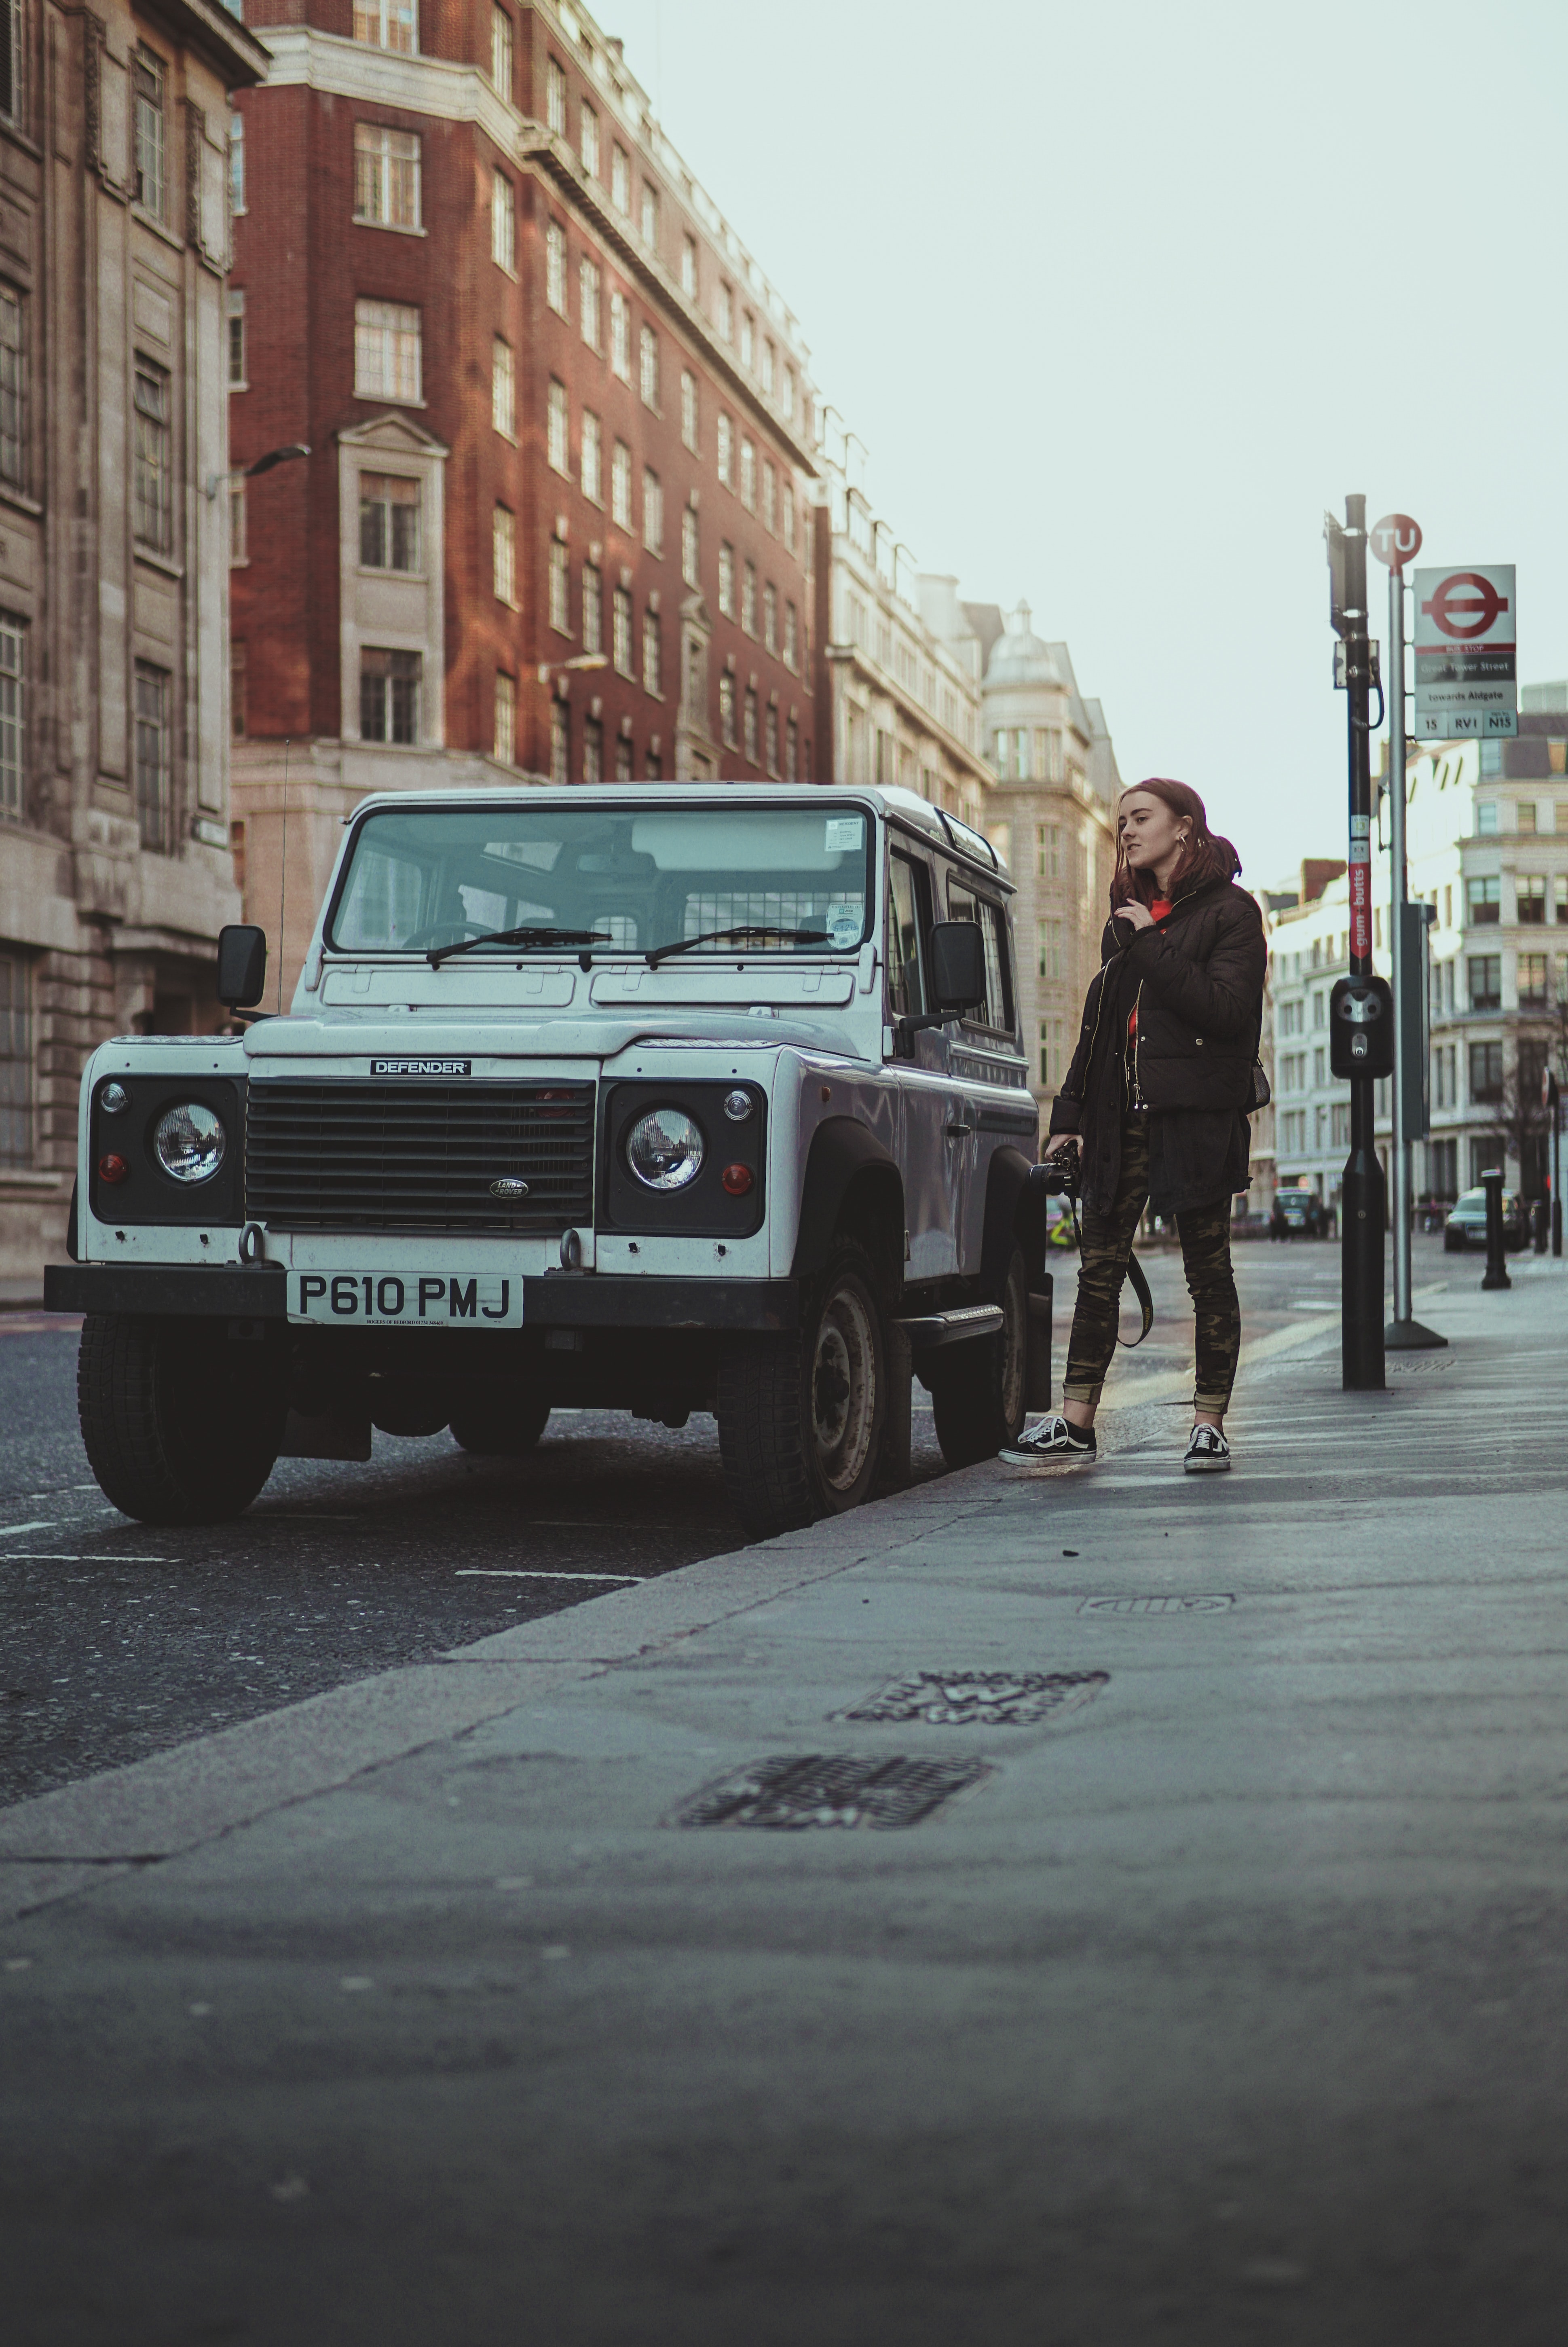 woman standing beside white SUV on street at daytime